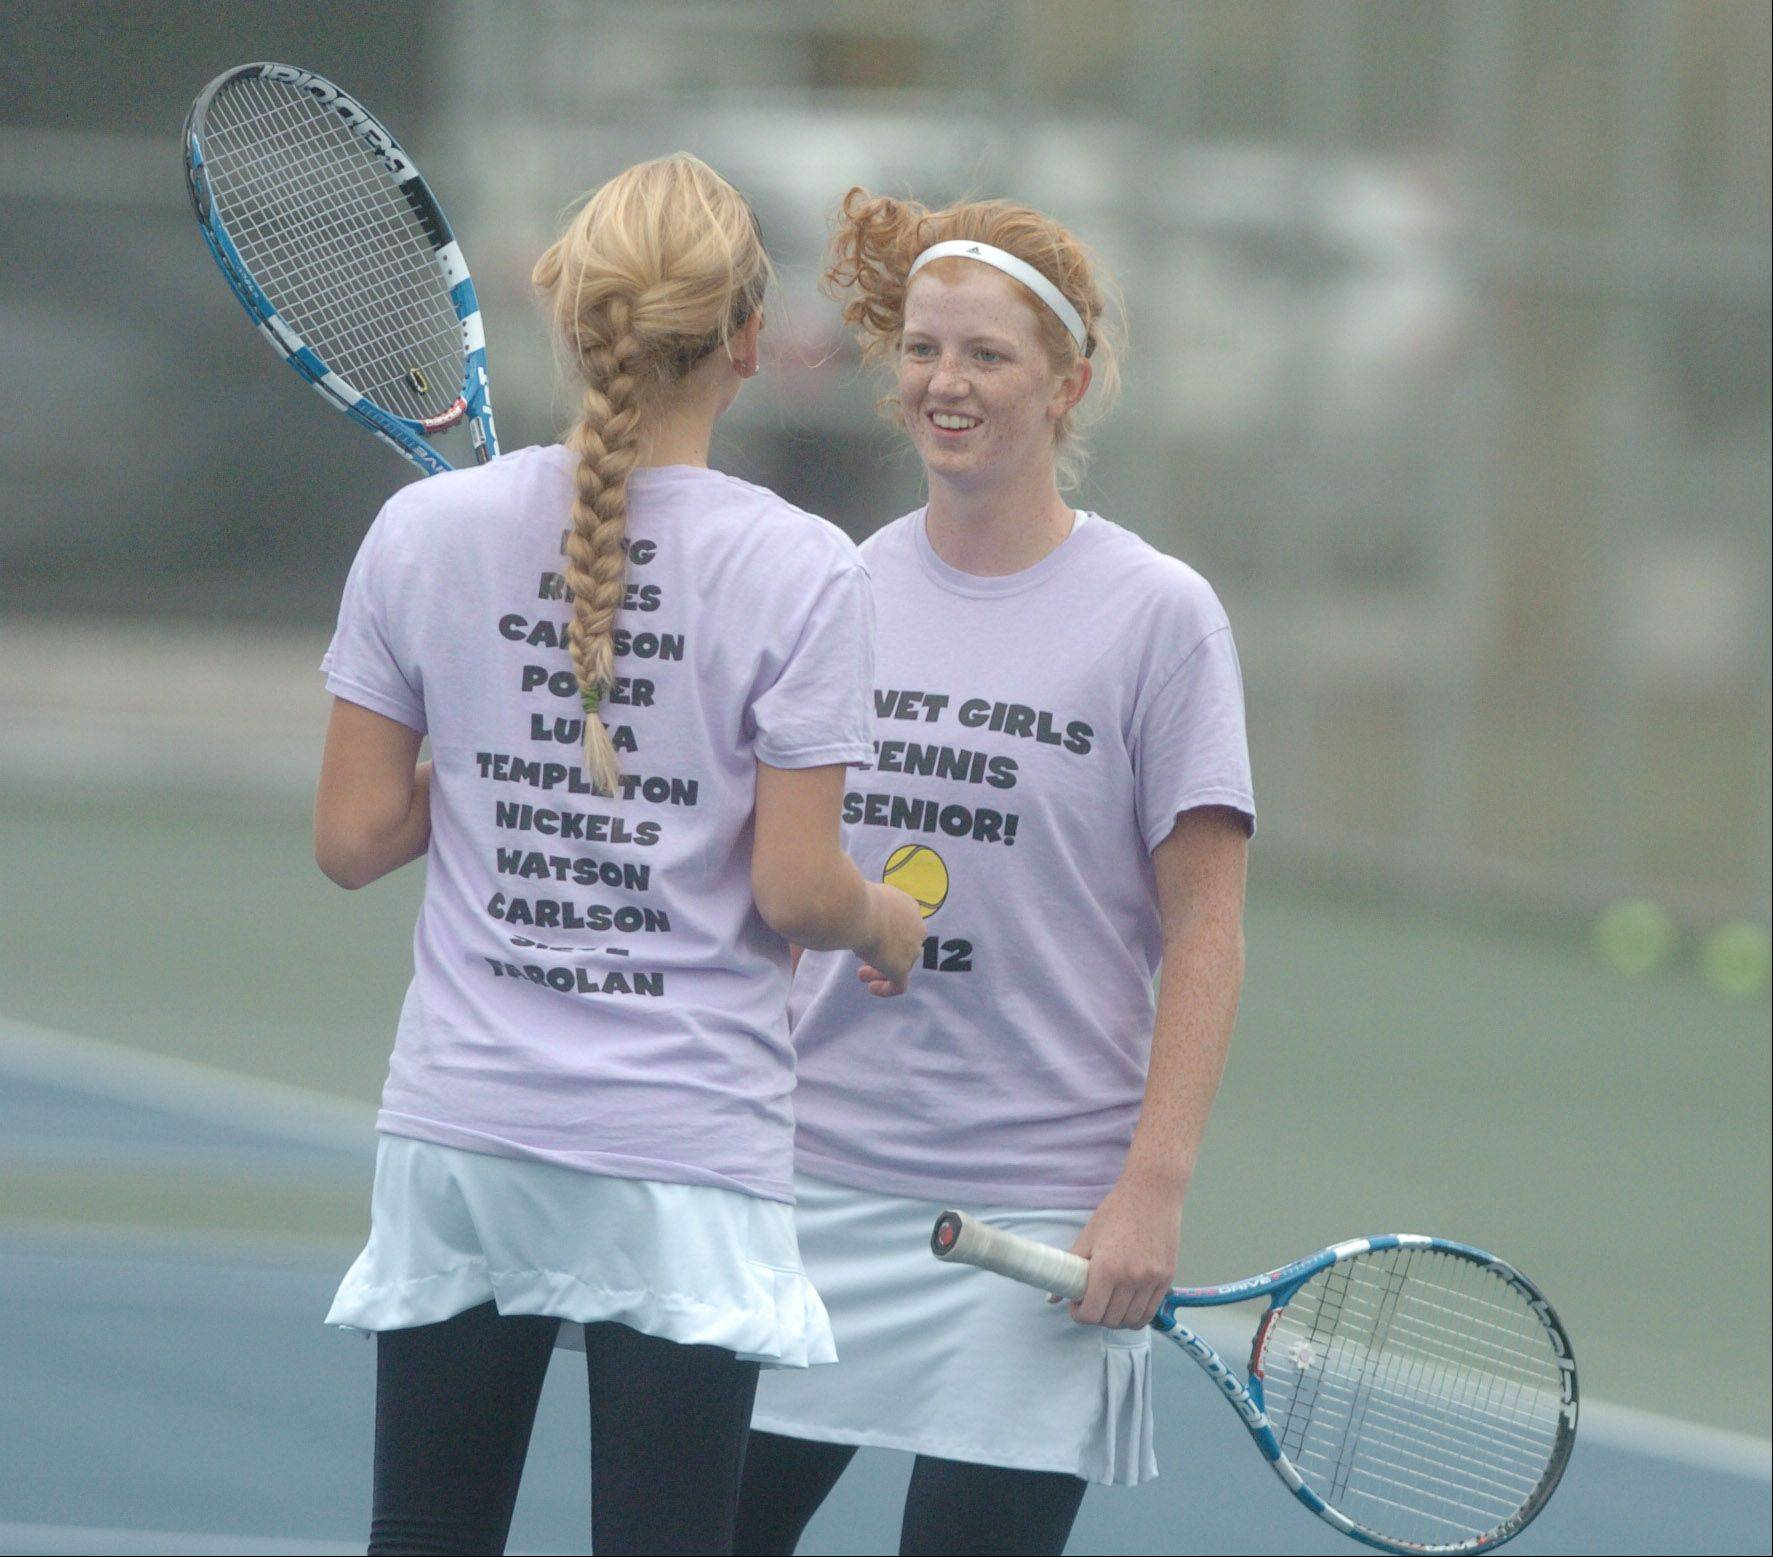 Daniella Reyes,left, and Mary Beth King of Benet are all smiles during the Naperville North girls tennis sectional at Naperville North High School Saturday. They are doubles team mates. They were leading in their match against Naperville North.